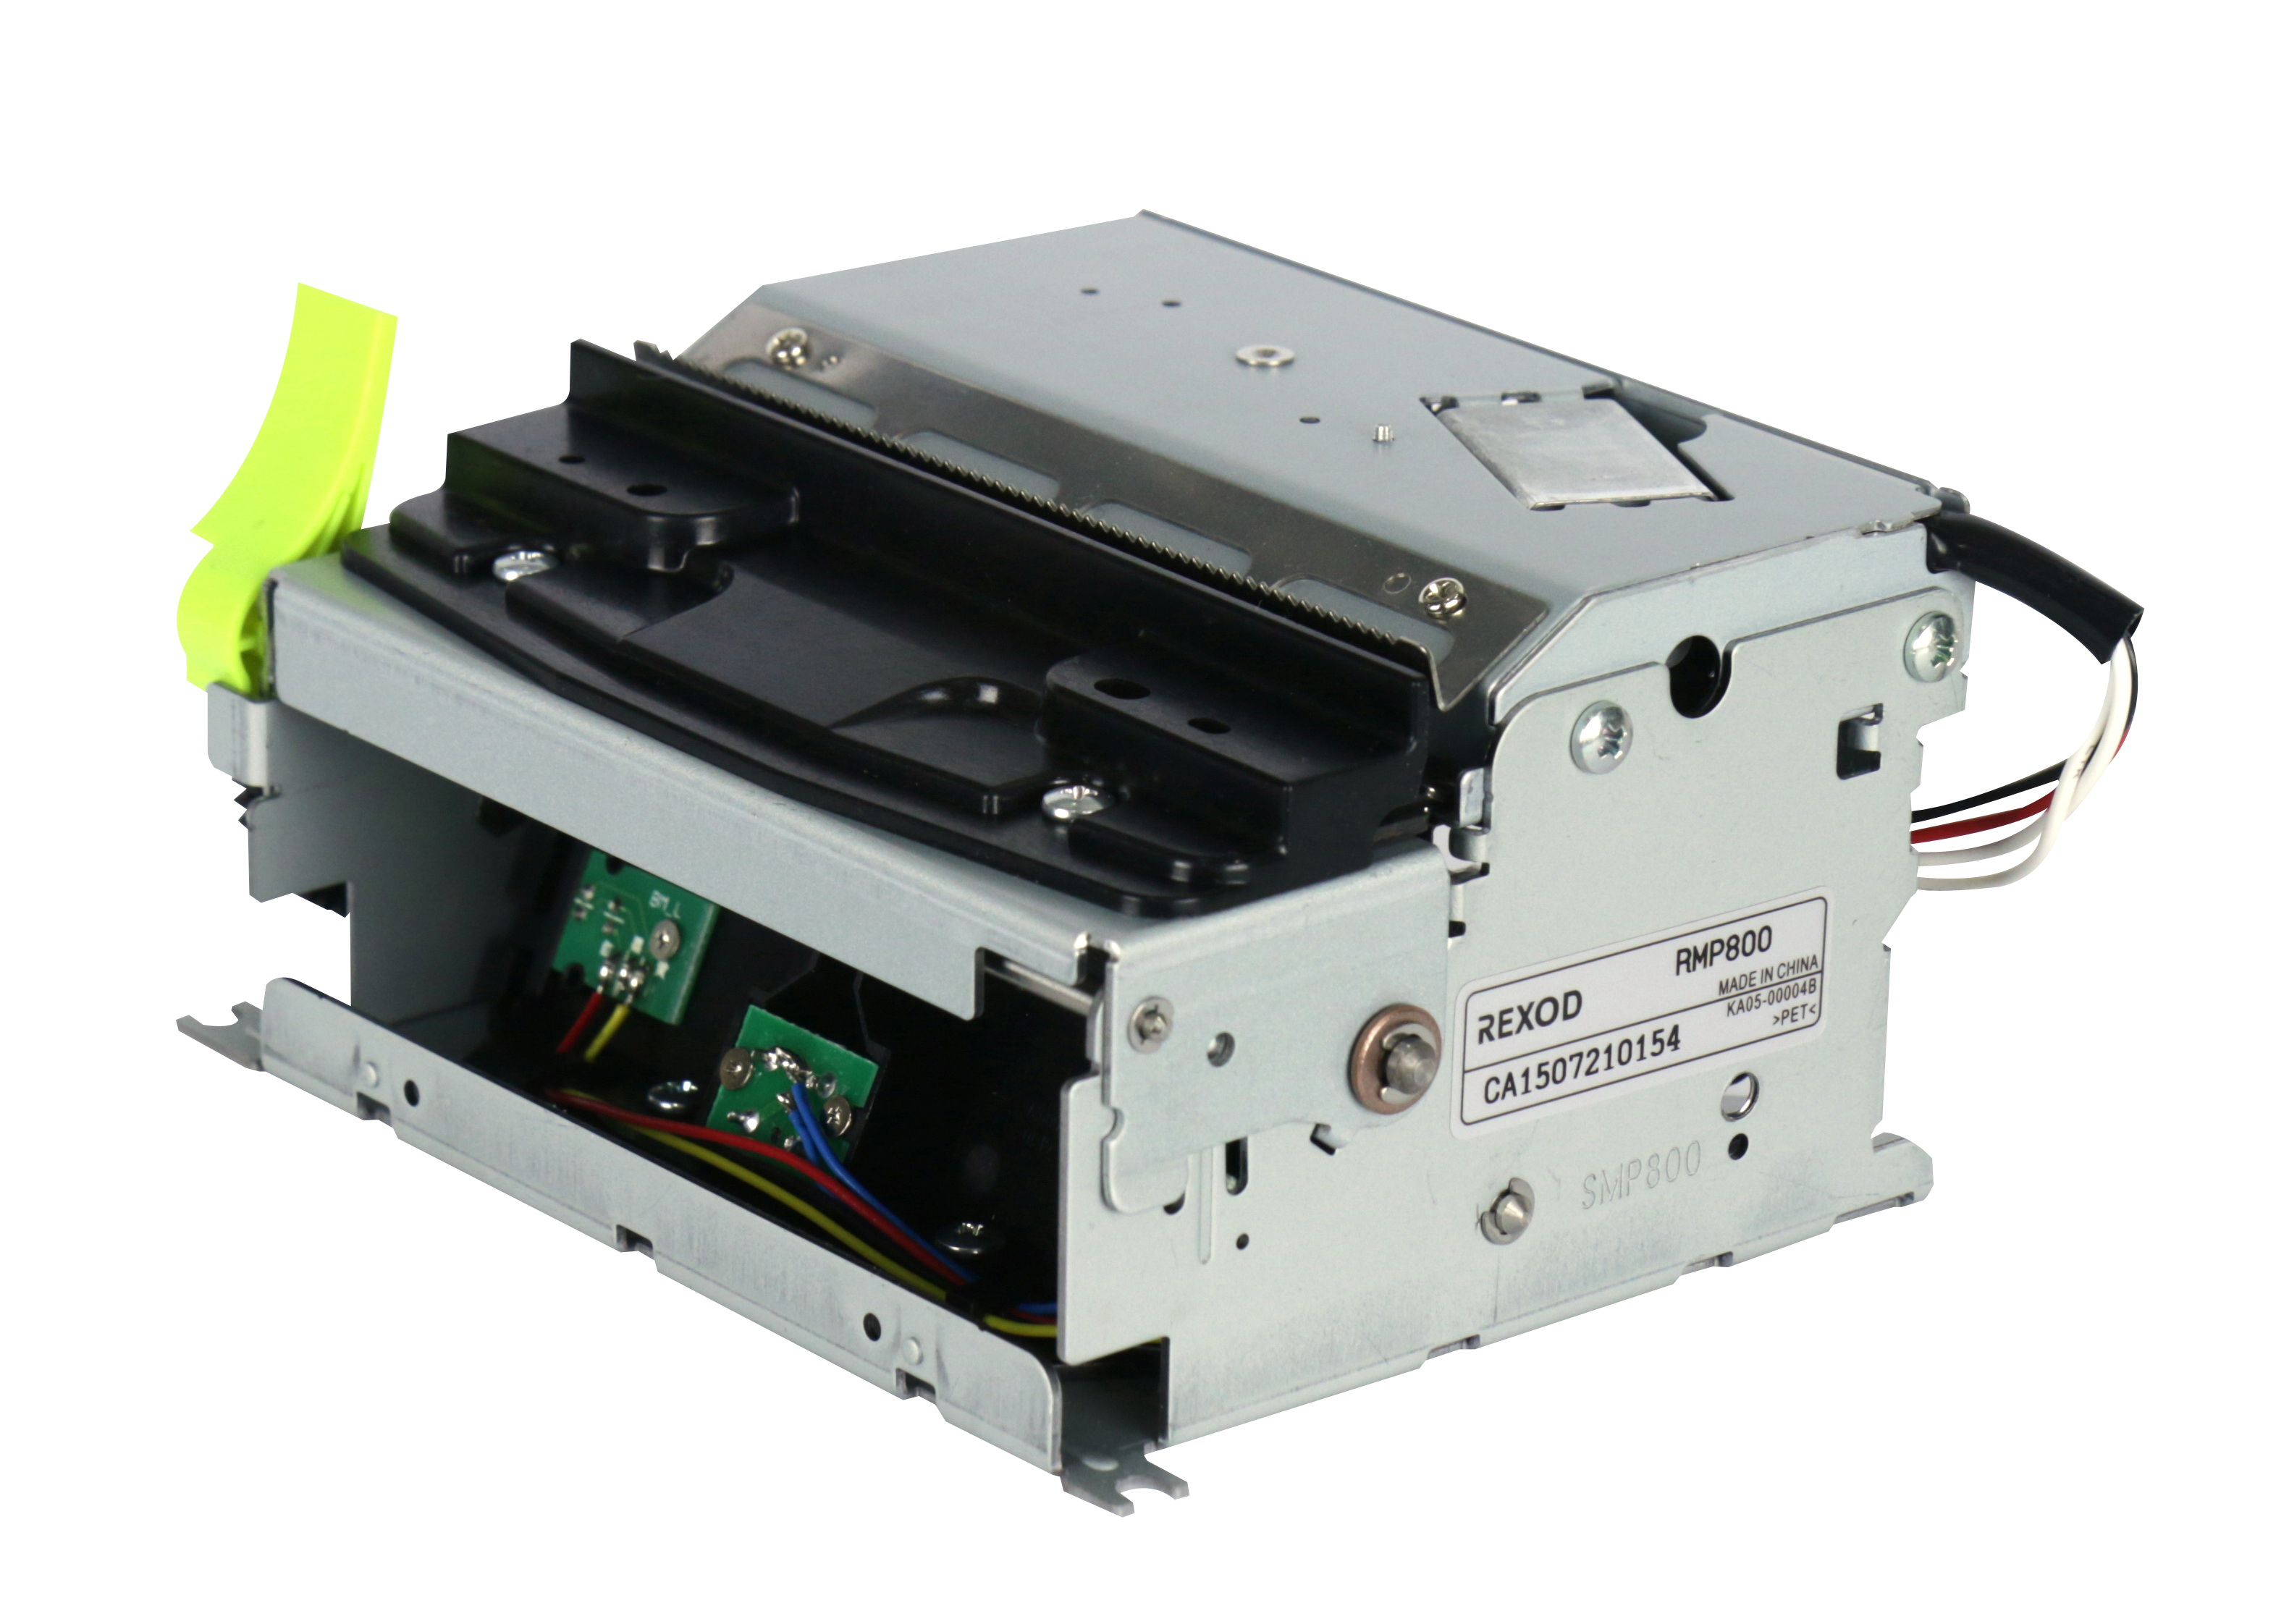 RMP800 series kiosk mechanism